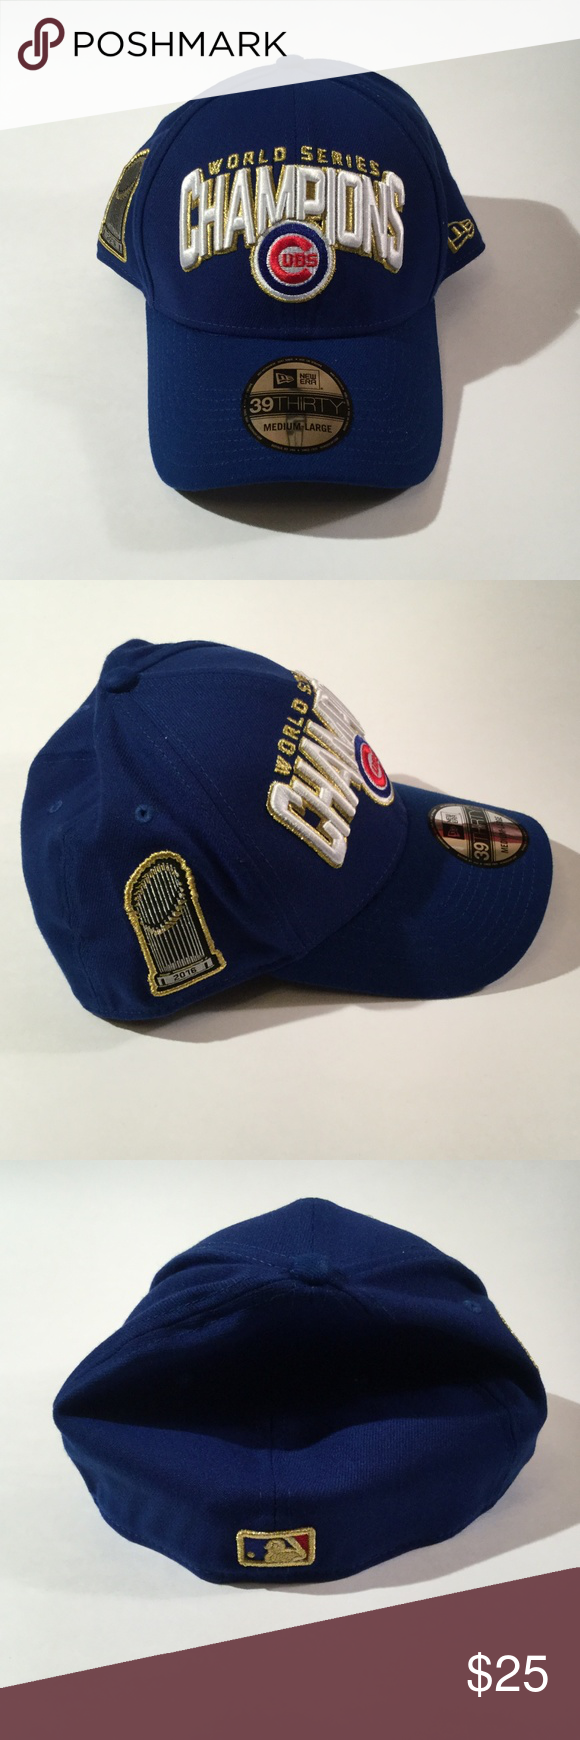 46f77341f6e New Era Chicago Cubs World Series Champions Cap ML New Era 39 Thirty  Chicago Cubs 2016